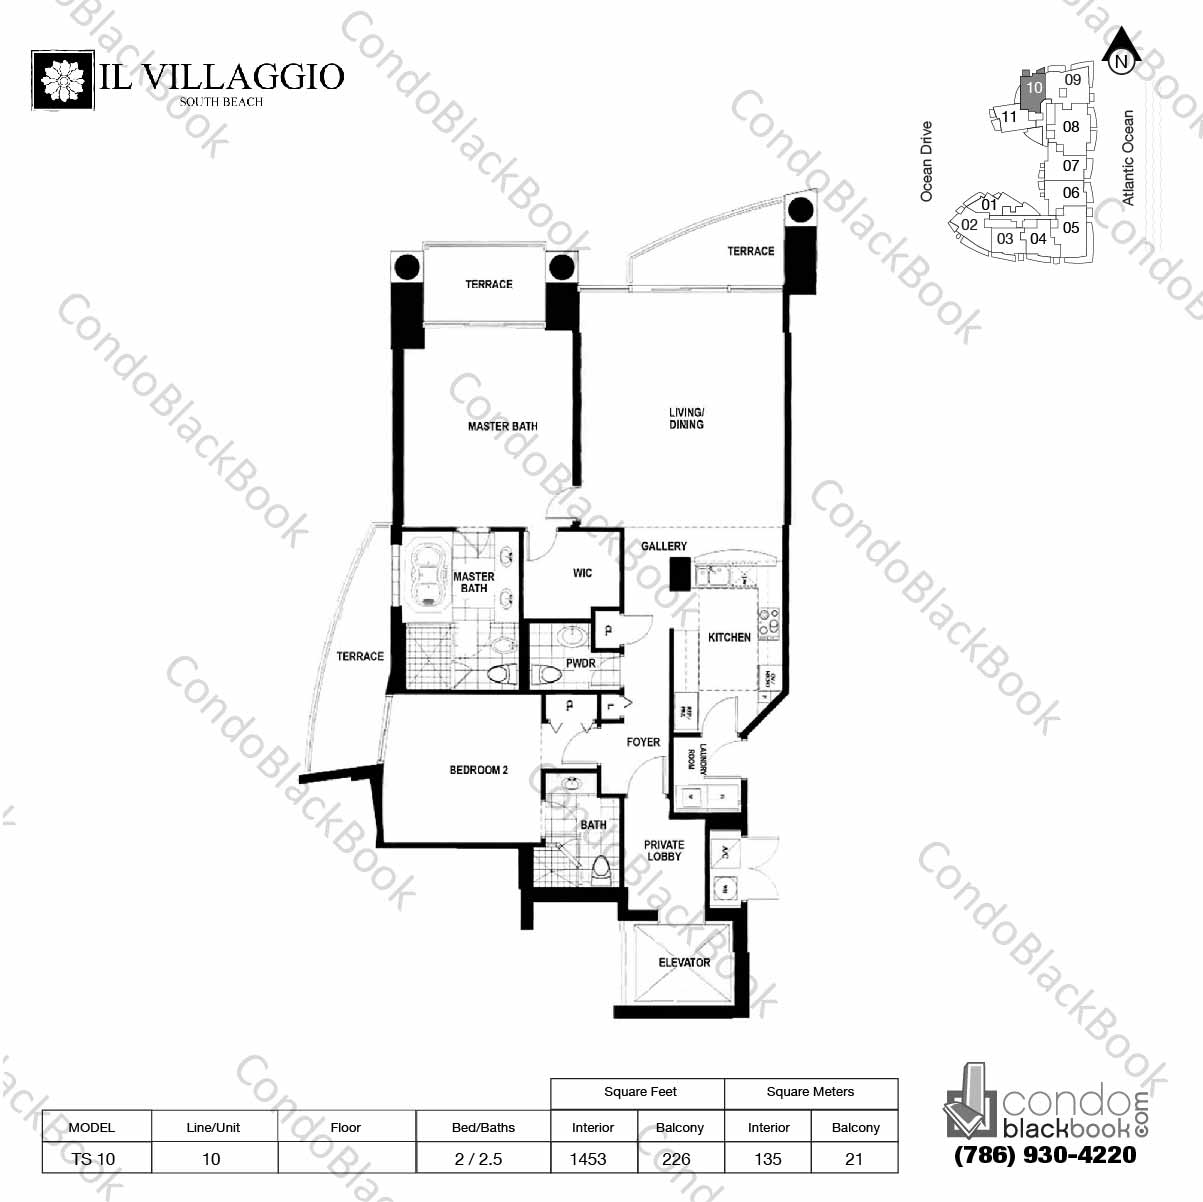 Floor plan for Il Villaggio South Beach Miami Beach, model TS-10, line 10, 2 /2.5 bedrooms, 1453 sq ft